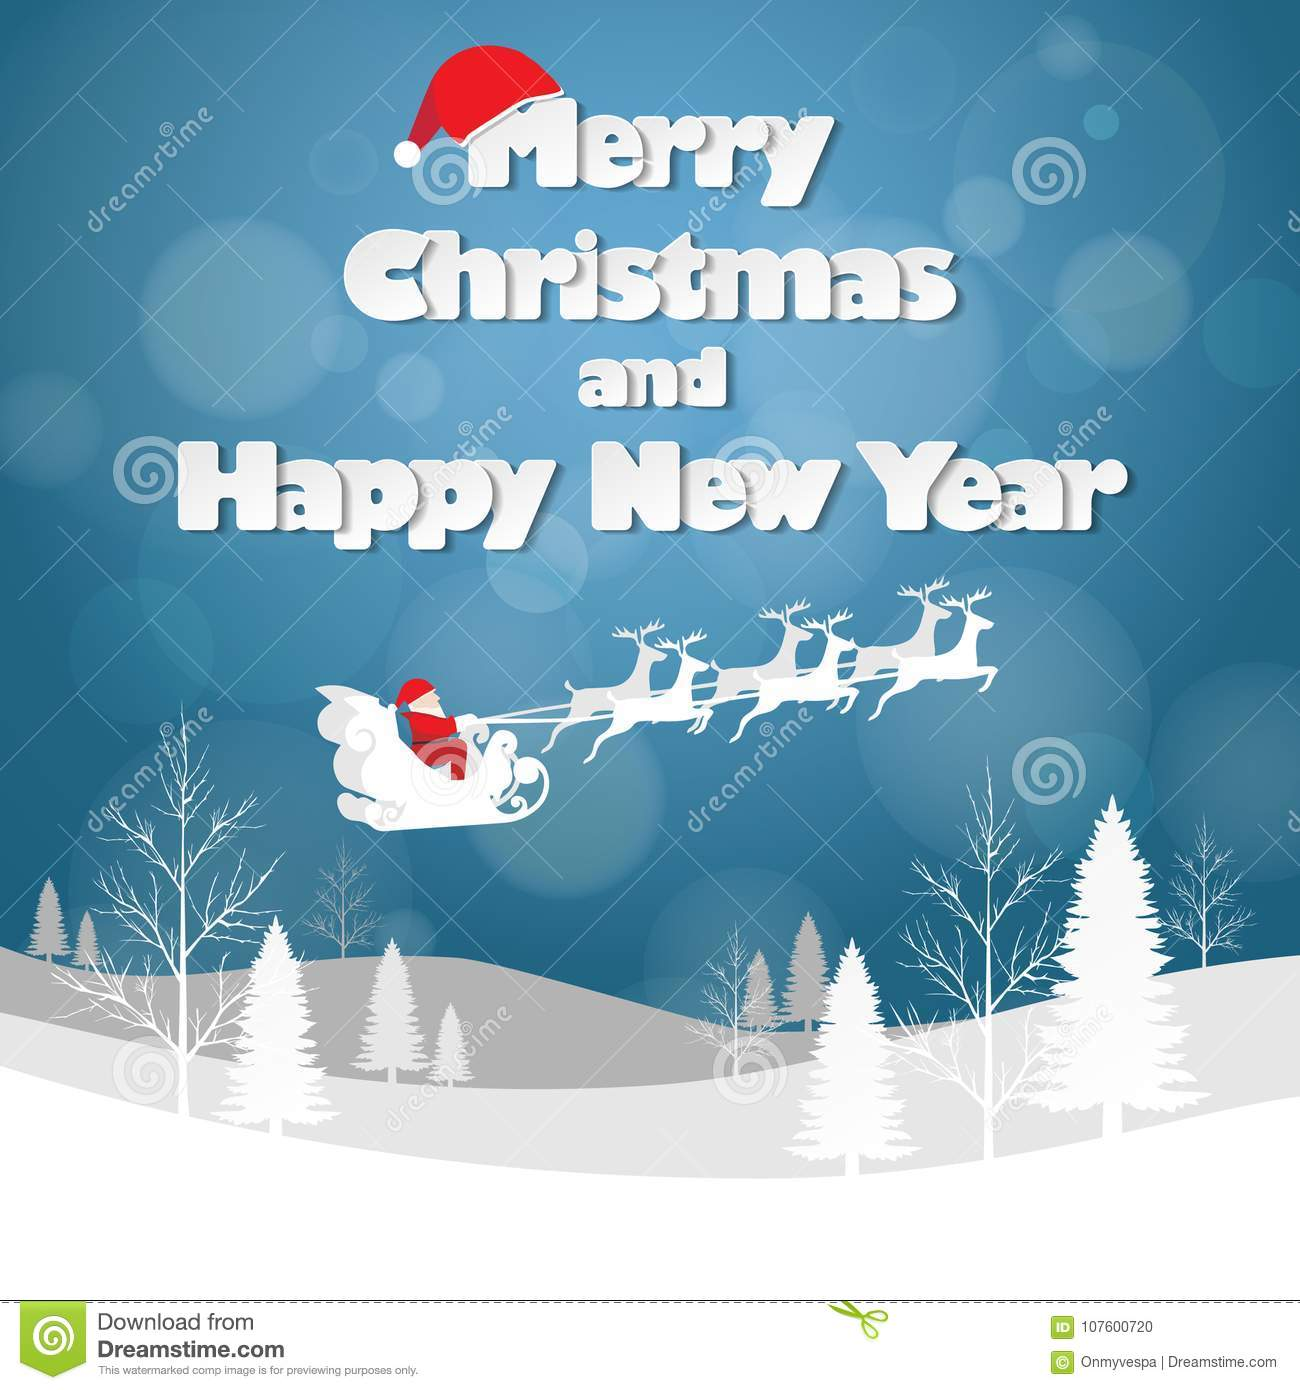 Design Christmas Greeting Card And Happy New Year Message Stock